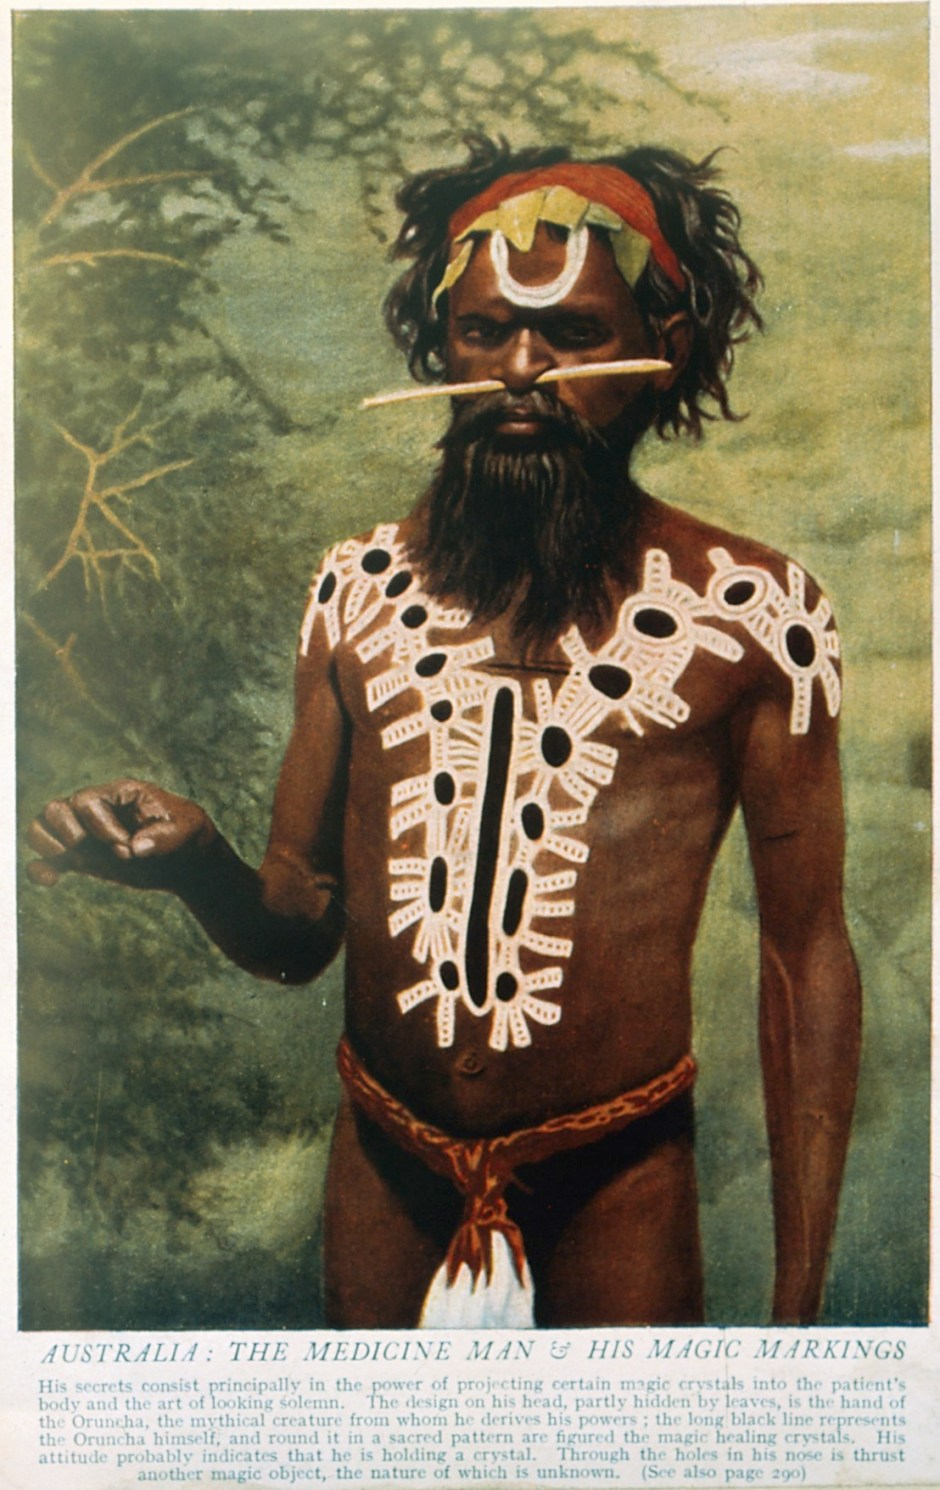 V0015977 Shaman/medicine man, body paint, Australia Credit: Wellcome Library, London. Wellcome Images images@wellcome.ac.uk http://wellcomeimages.org 1. A shaman or medicine man with extensive body painting Worgaia, Central Australia. Process print. 2. A shaman or medicine man with extensive body painting and nose stick, Australia. Colour process print. Published:  -  Copyrighted work available under Creative Commons Attribution only licence CC BY 4.0 http://creativecommons.org/licenses/by/4.0/